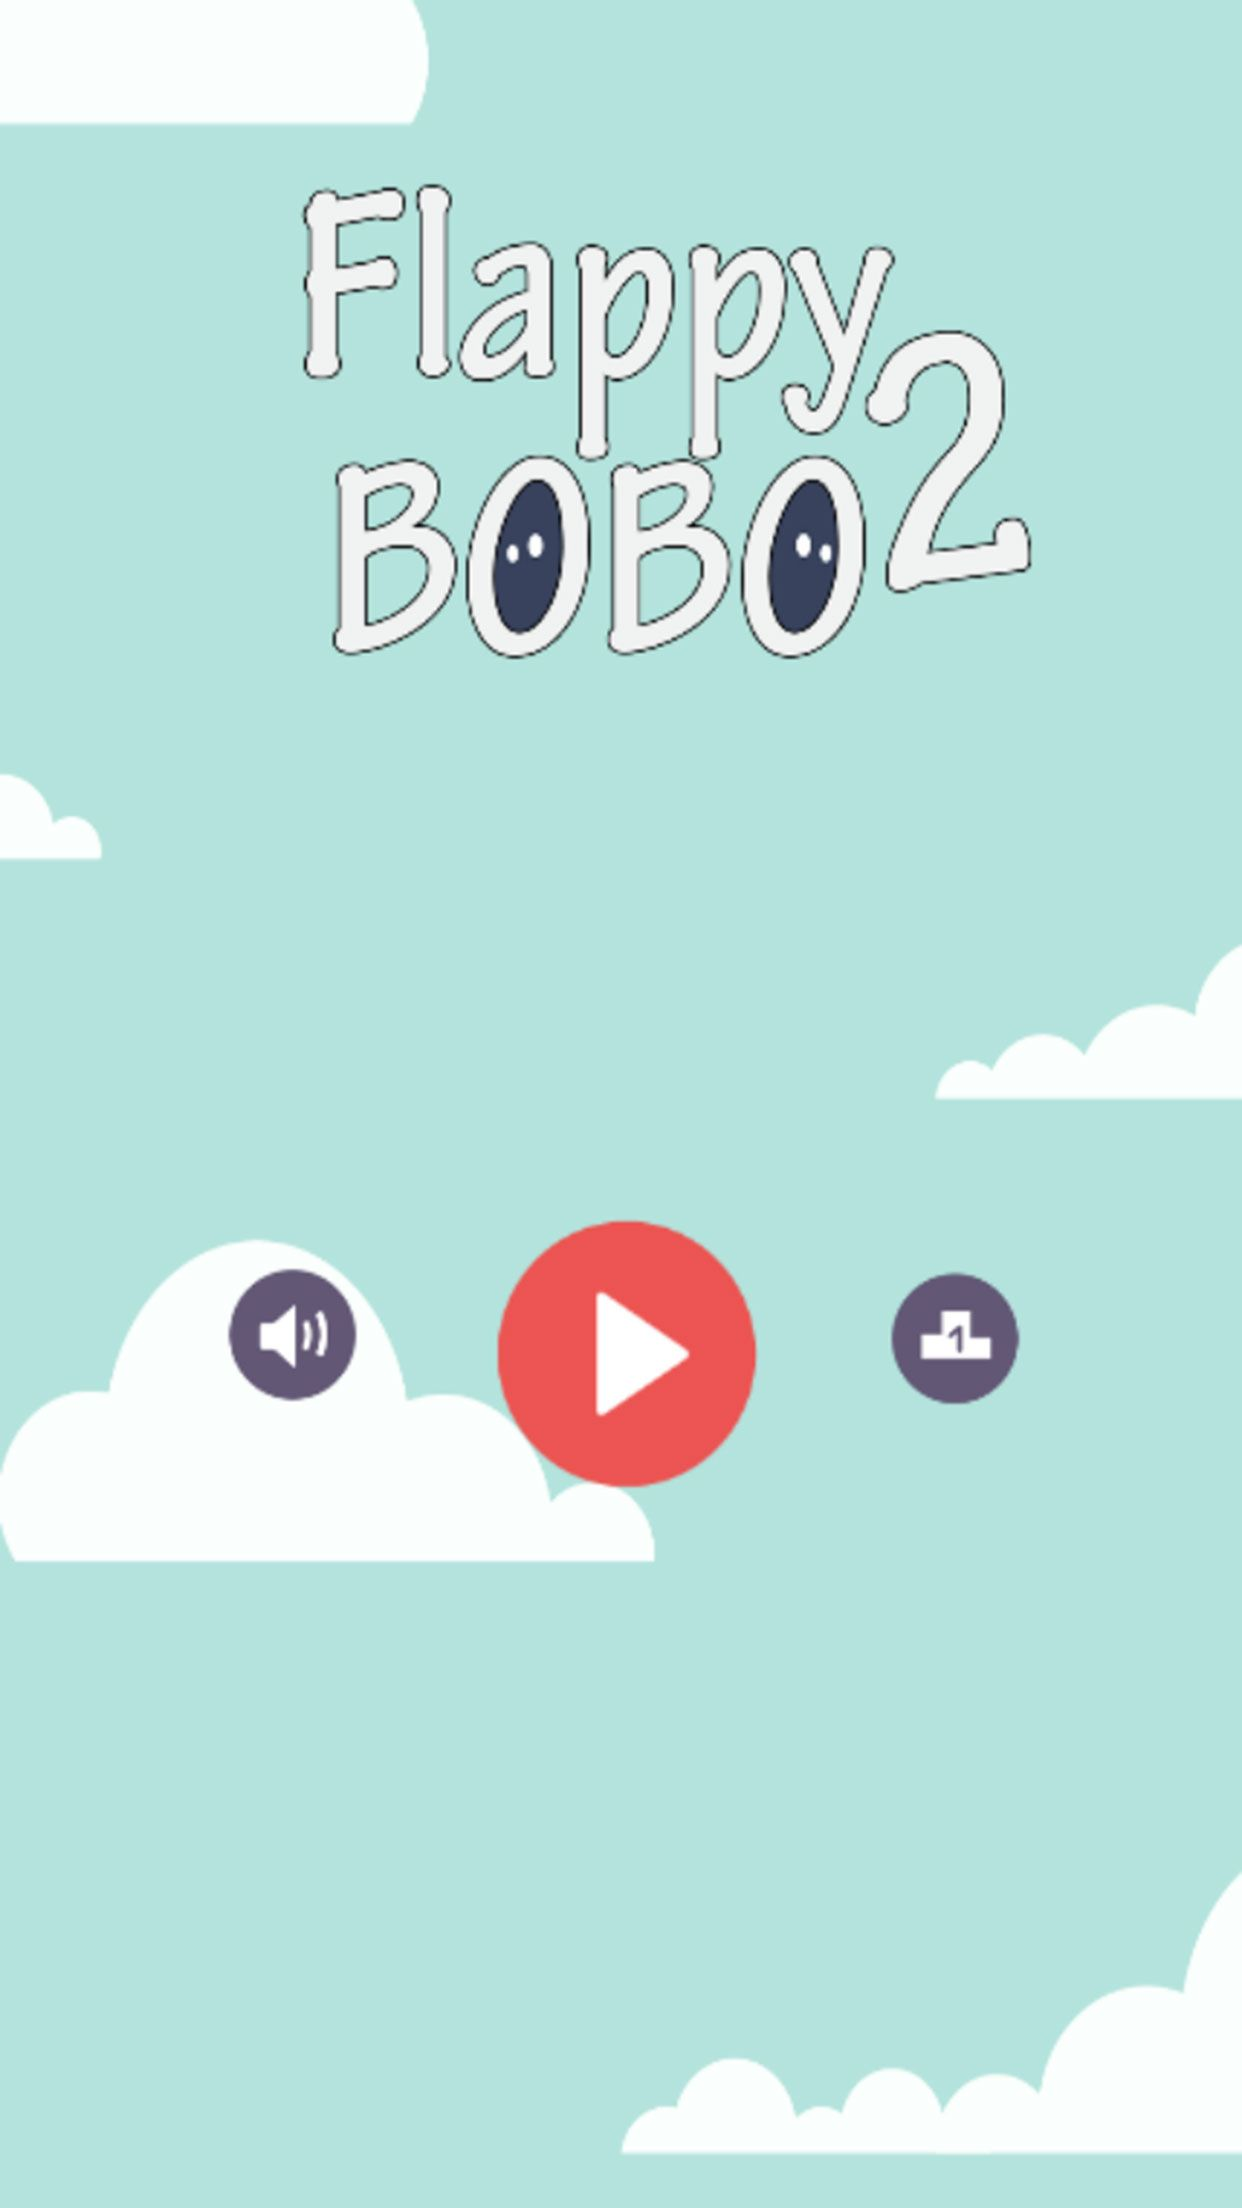 Flappy Bobo 2 - Buildbox Game Template Screenshot 1